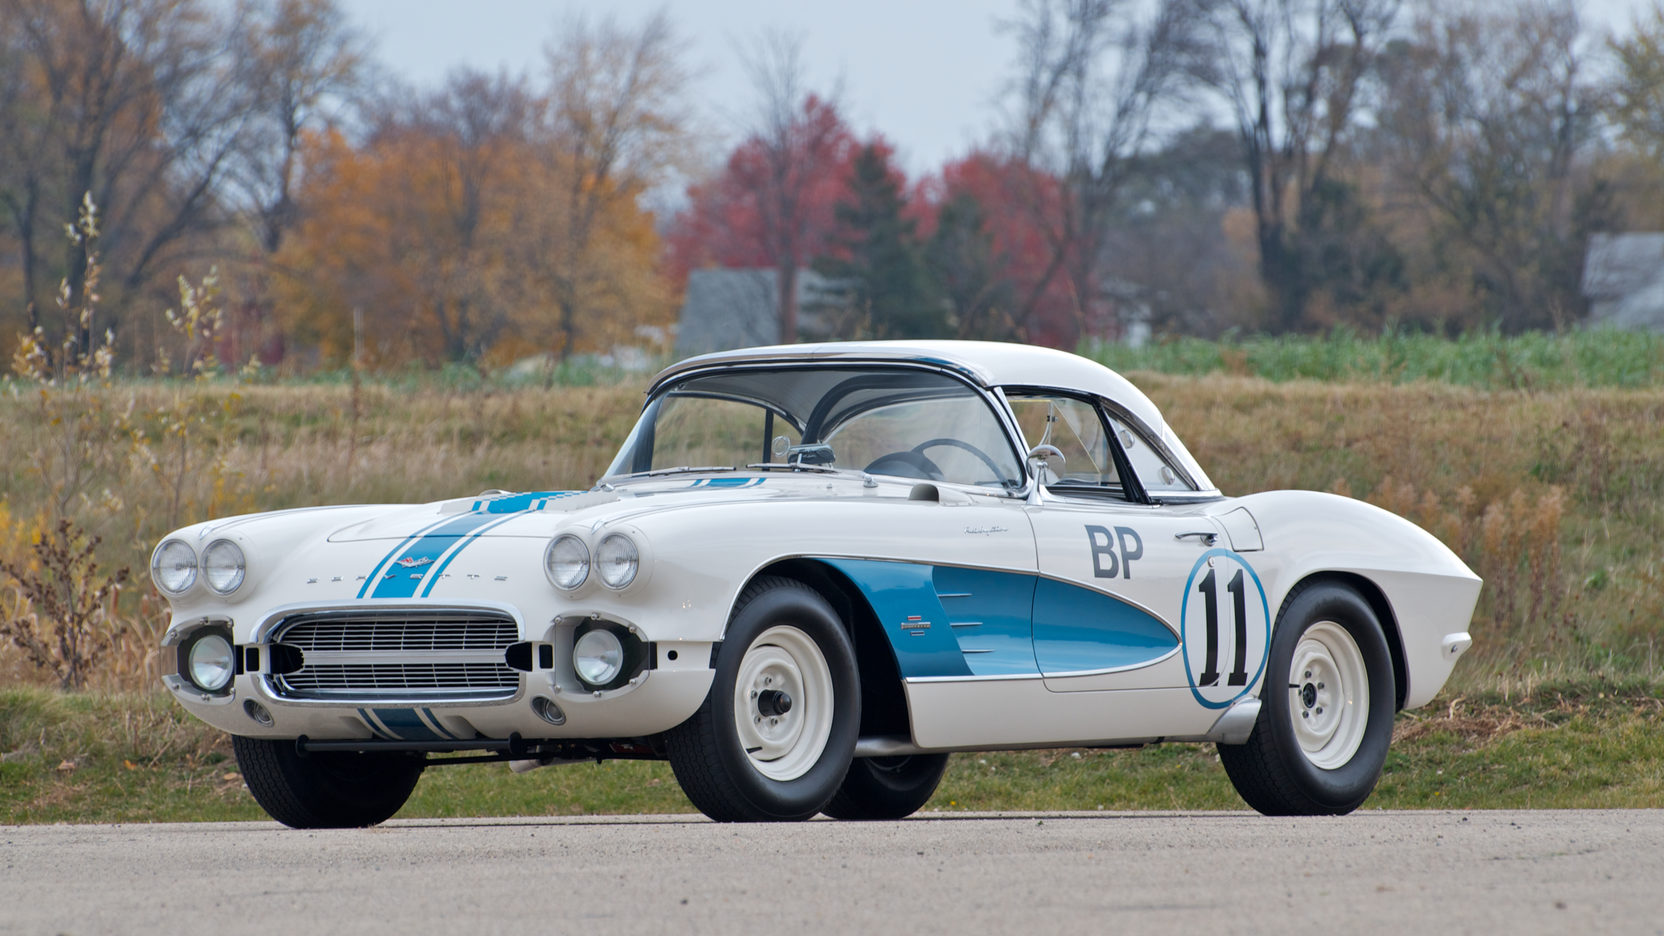 Gulf Oil-sponsored 1961 Corvette